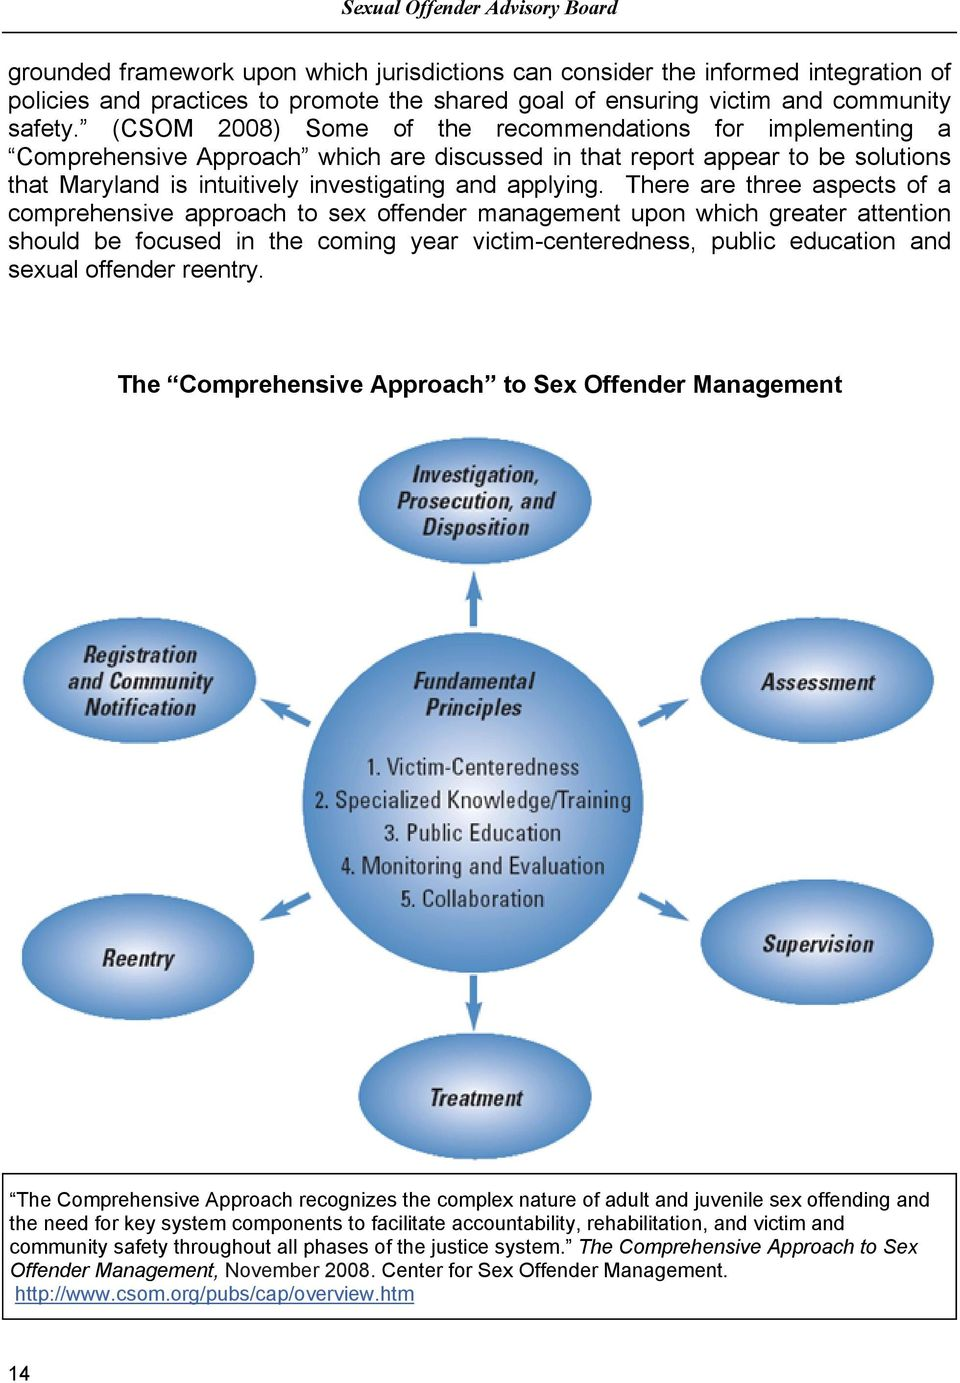 (CSOM 2008) Some of the recommendations for implementing a Comprehensive Approach which are discussed in that report appear to be solutions that Maryland is intuitively investigating and applying.